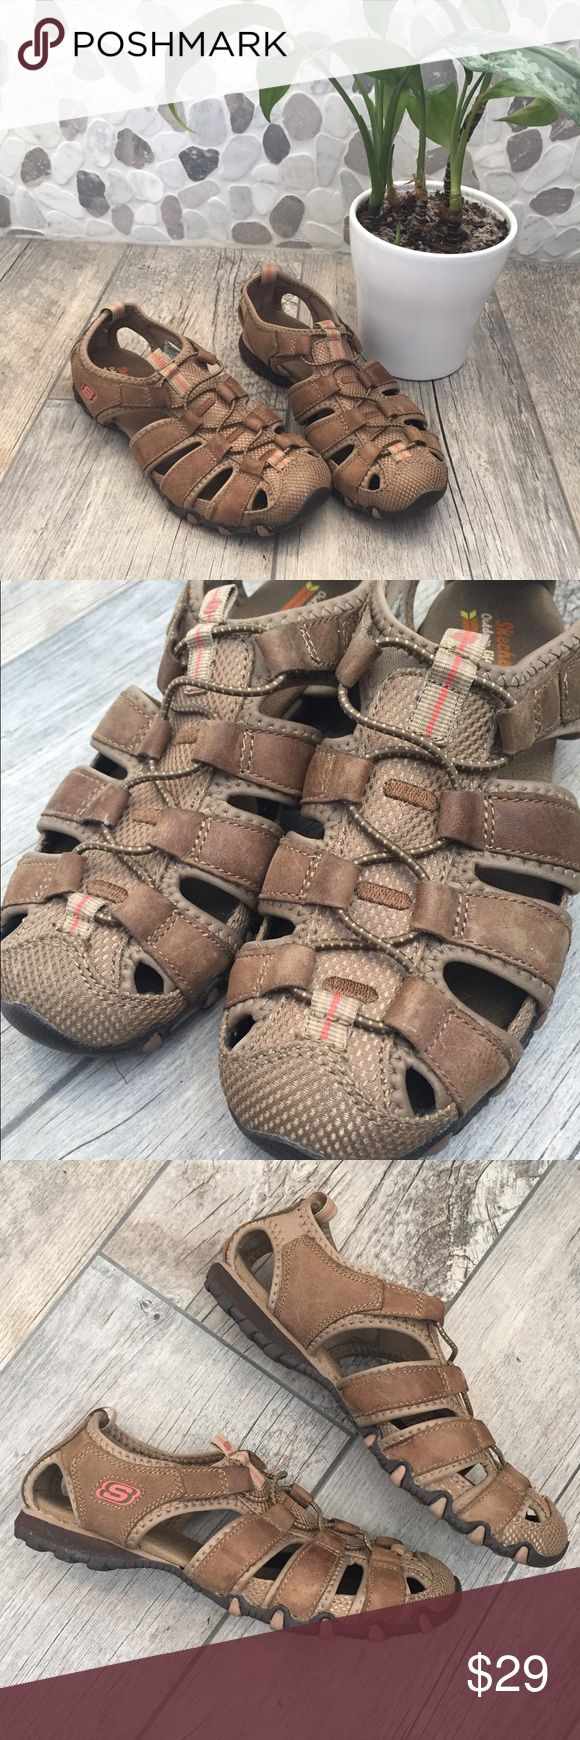 EUC Skechers Outdoor Lifestyle Leather Sandals Worn only a couple of times. Still in perfect condition. These Leather Sport Sandals are perfect for the active lifestyle. Great for hiking, walking trails etc. Skechers Shoes Sandals